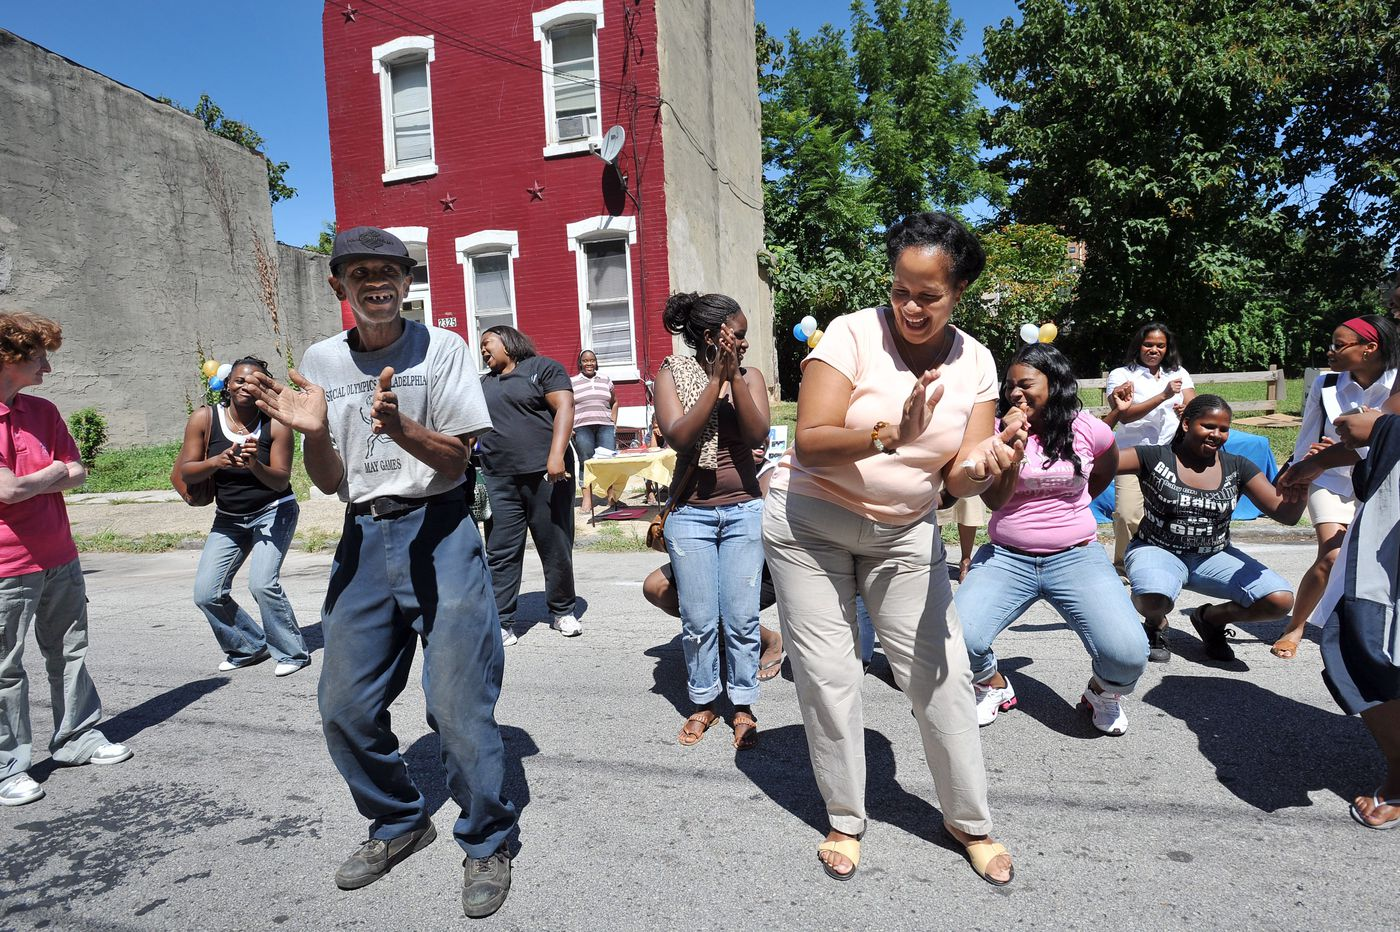 Want to host a block party in Philly? Ask cops first, Streets Department says